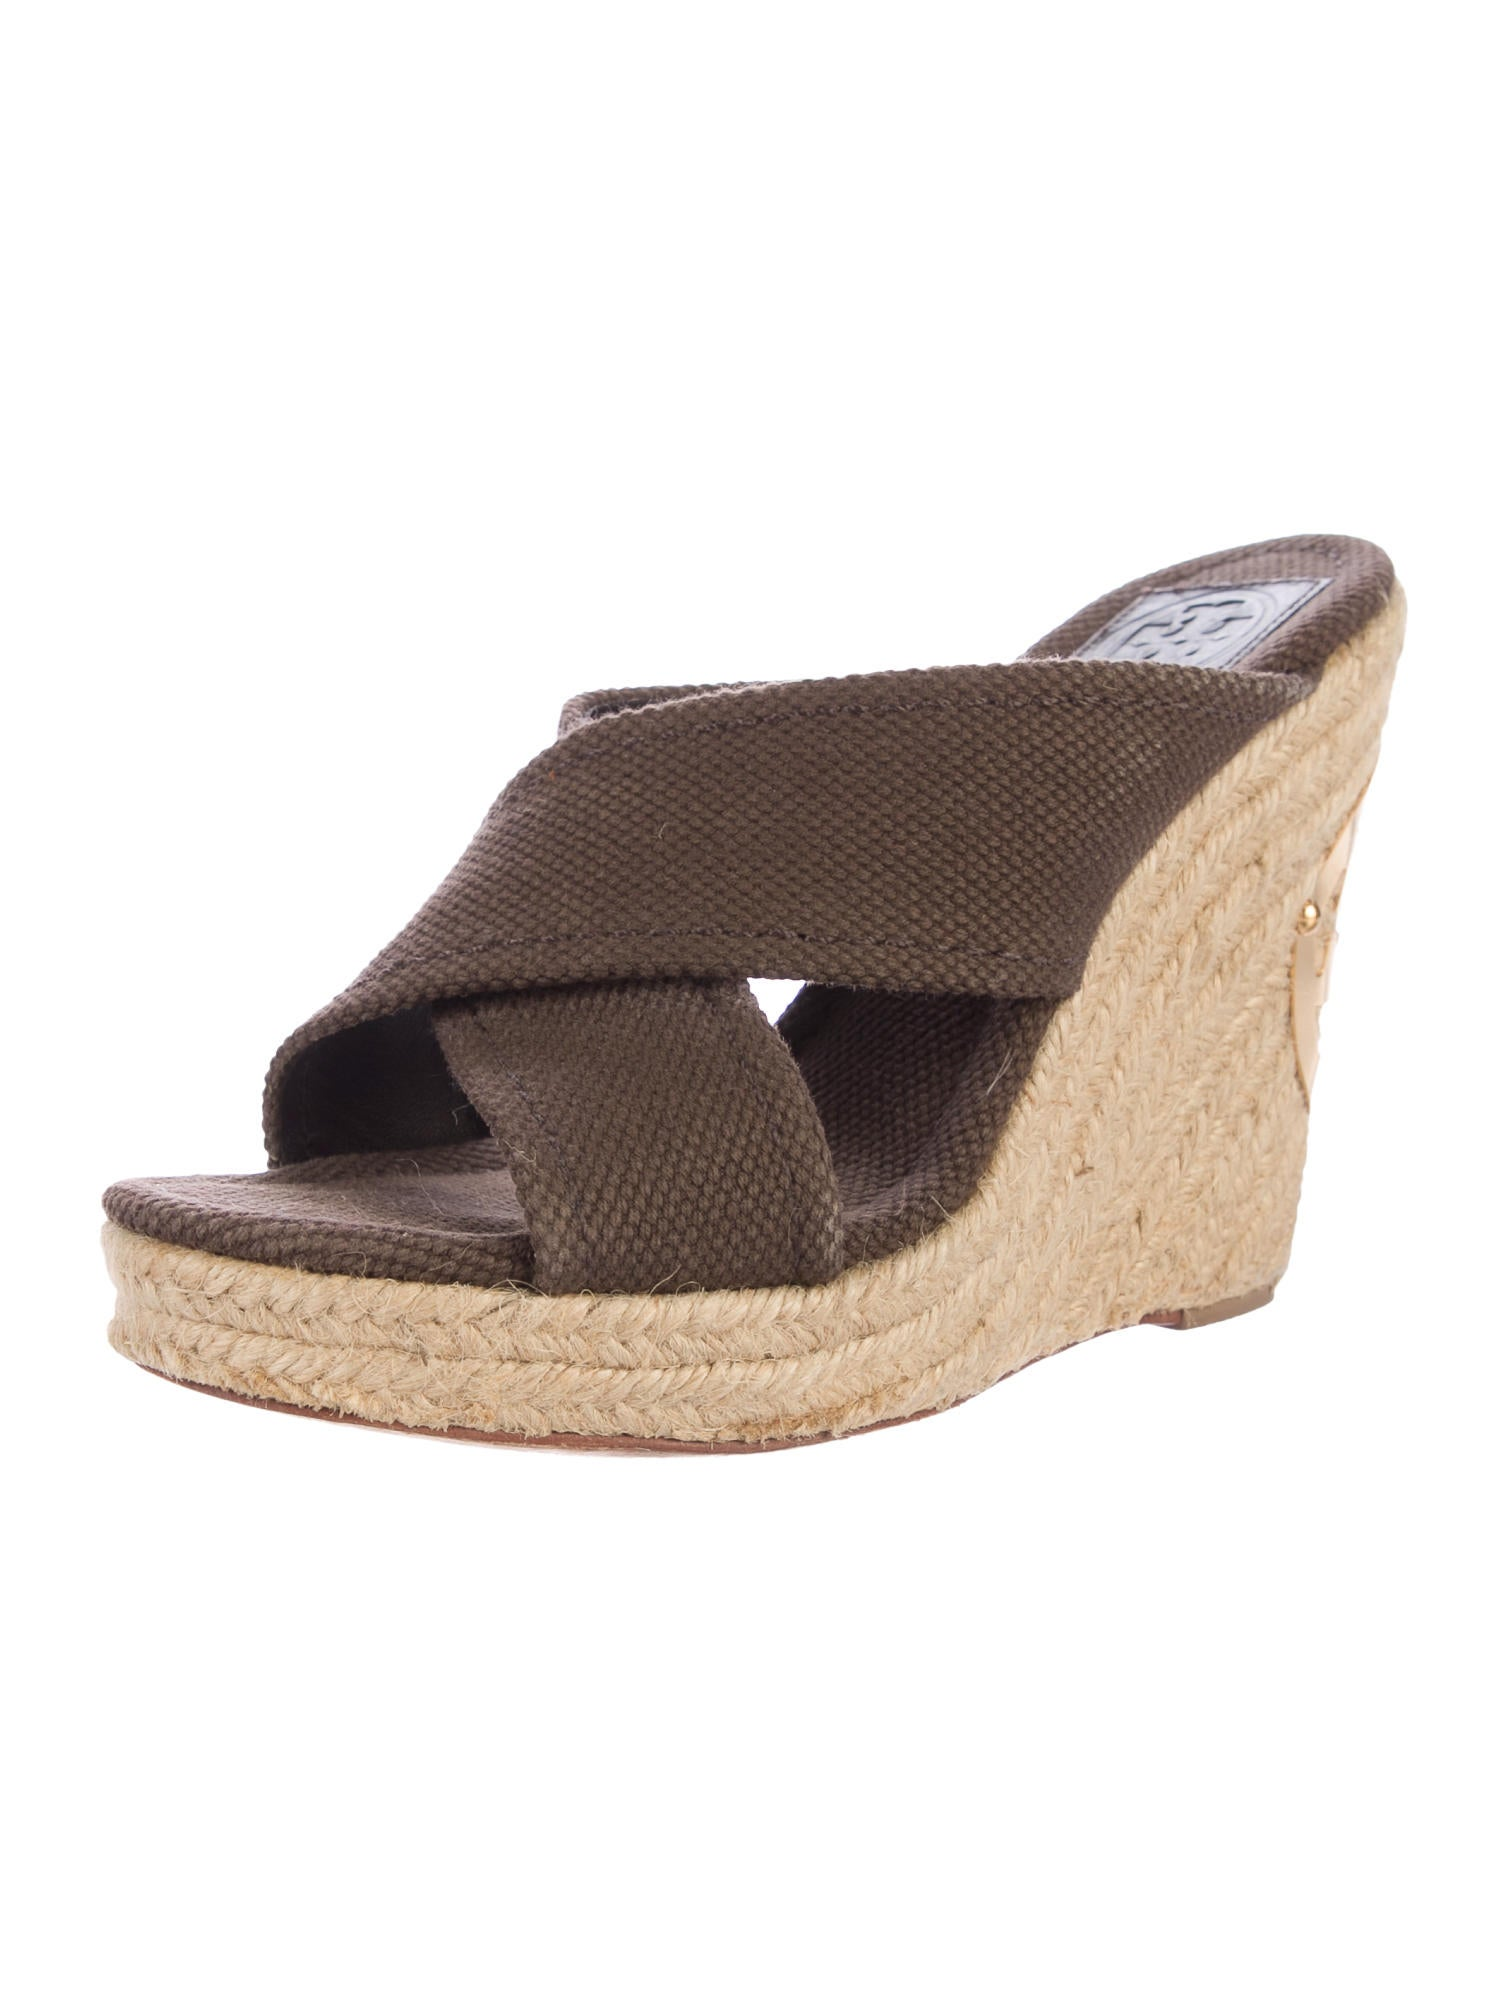 Tory Burch Espadrille Wedge Sandals - Shoes - WTO108175 ...